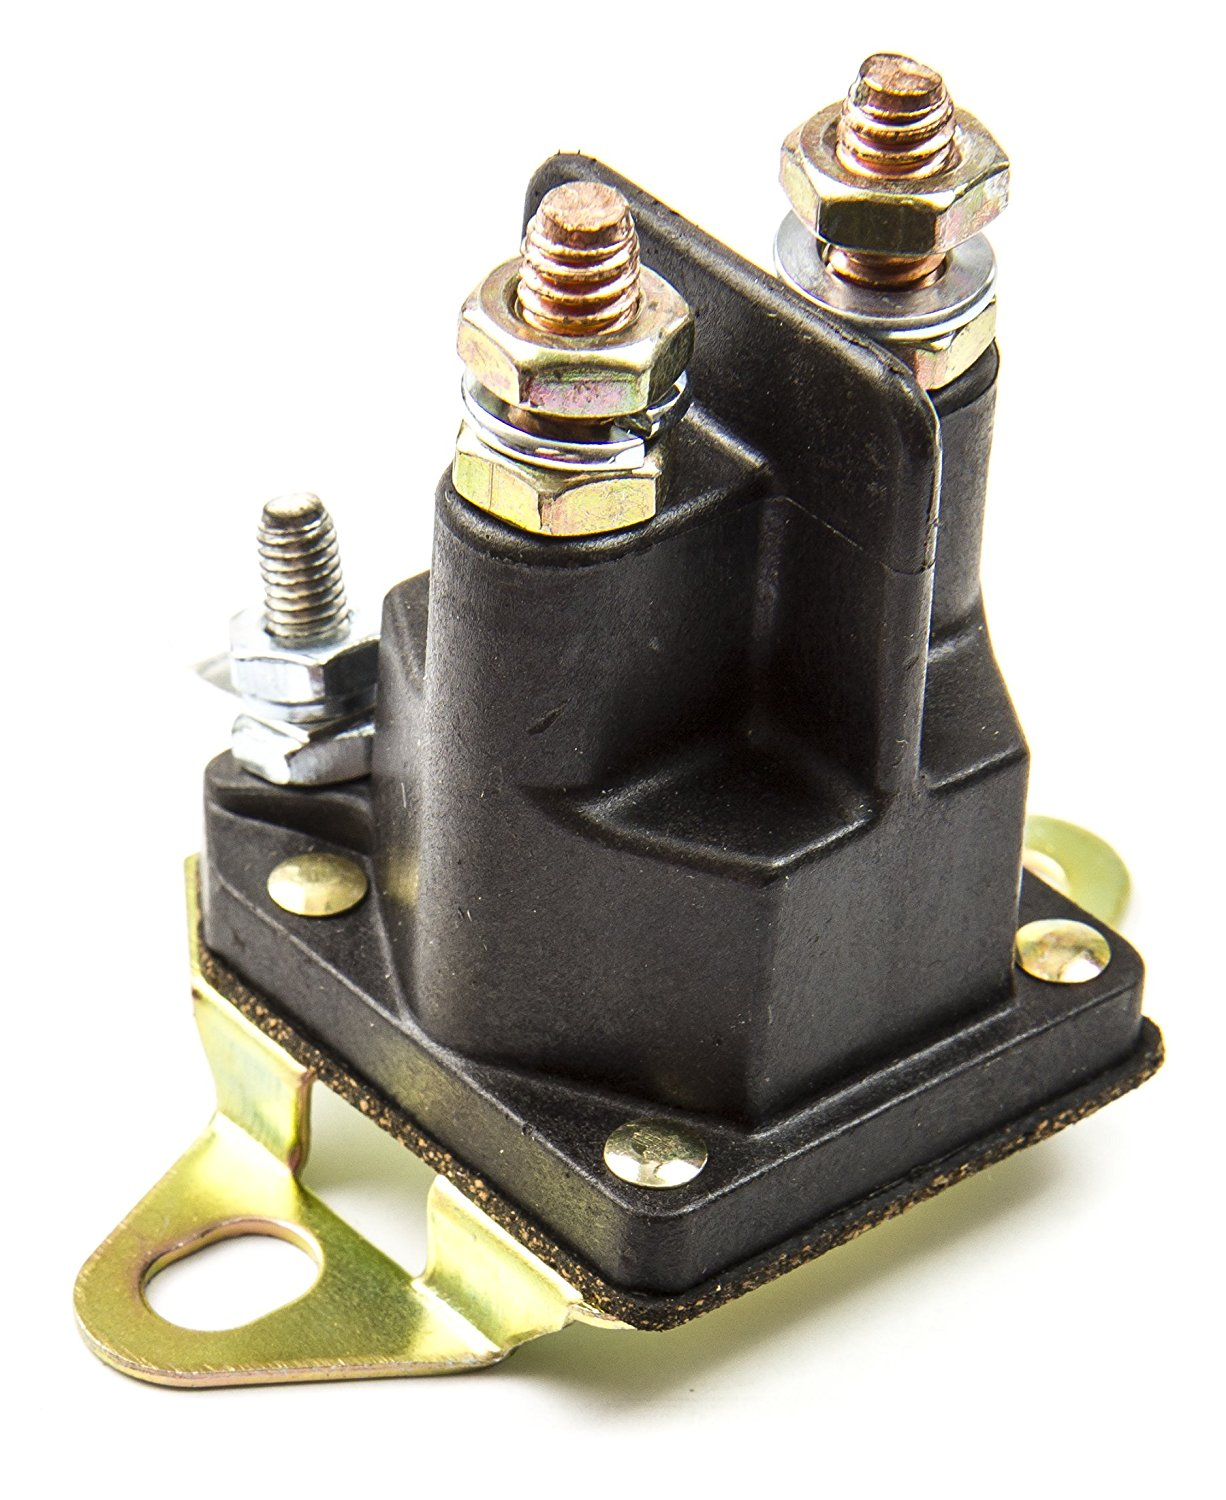 7-01861-1 Solenoid Replacement for Model Bobcat 48035A Bolens 1751569 Briggs and Stratton 691656,... by